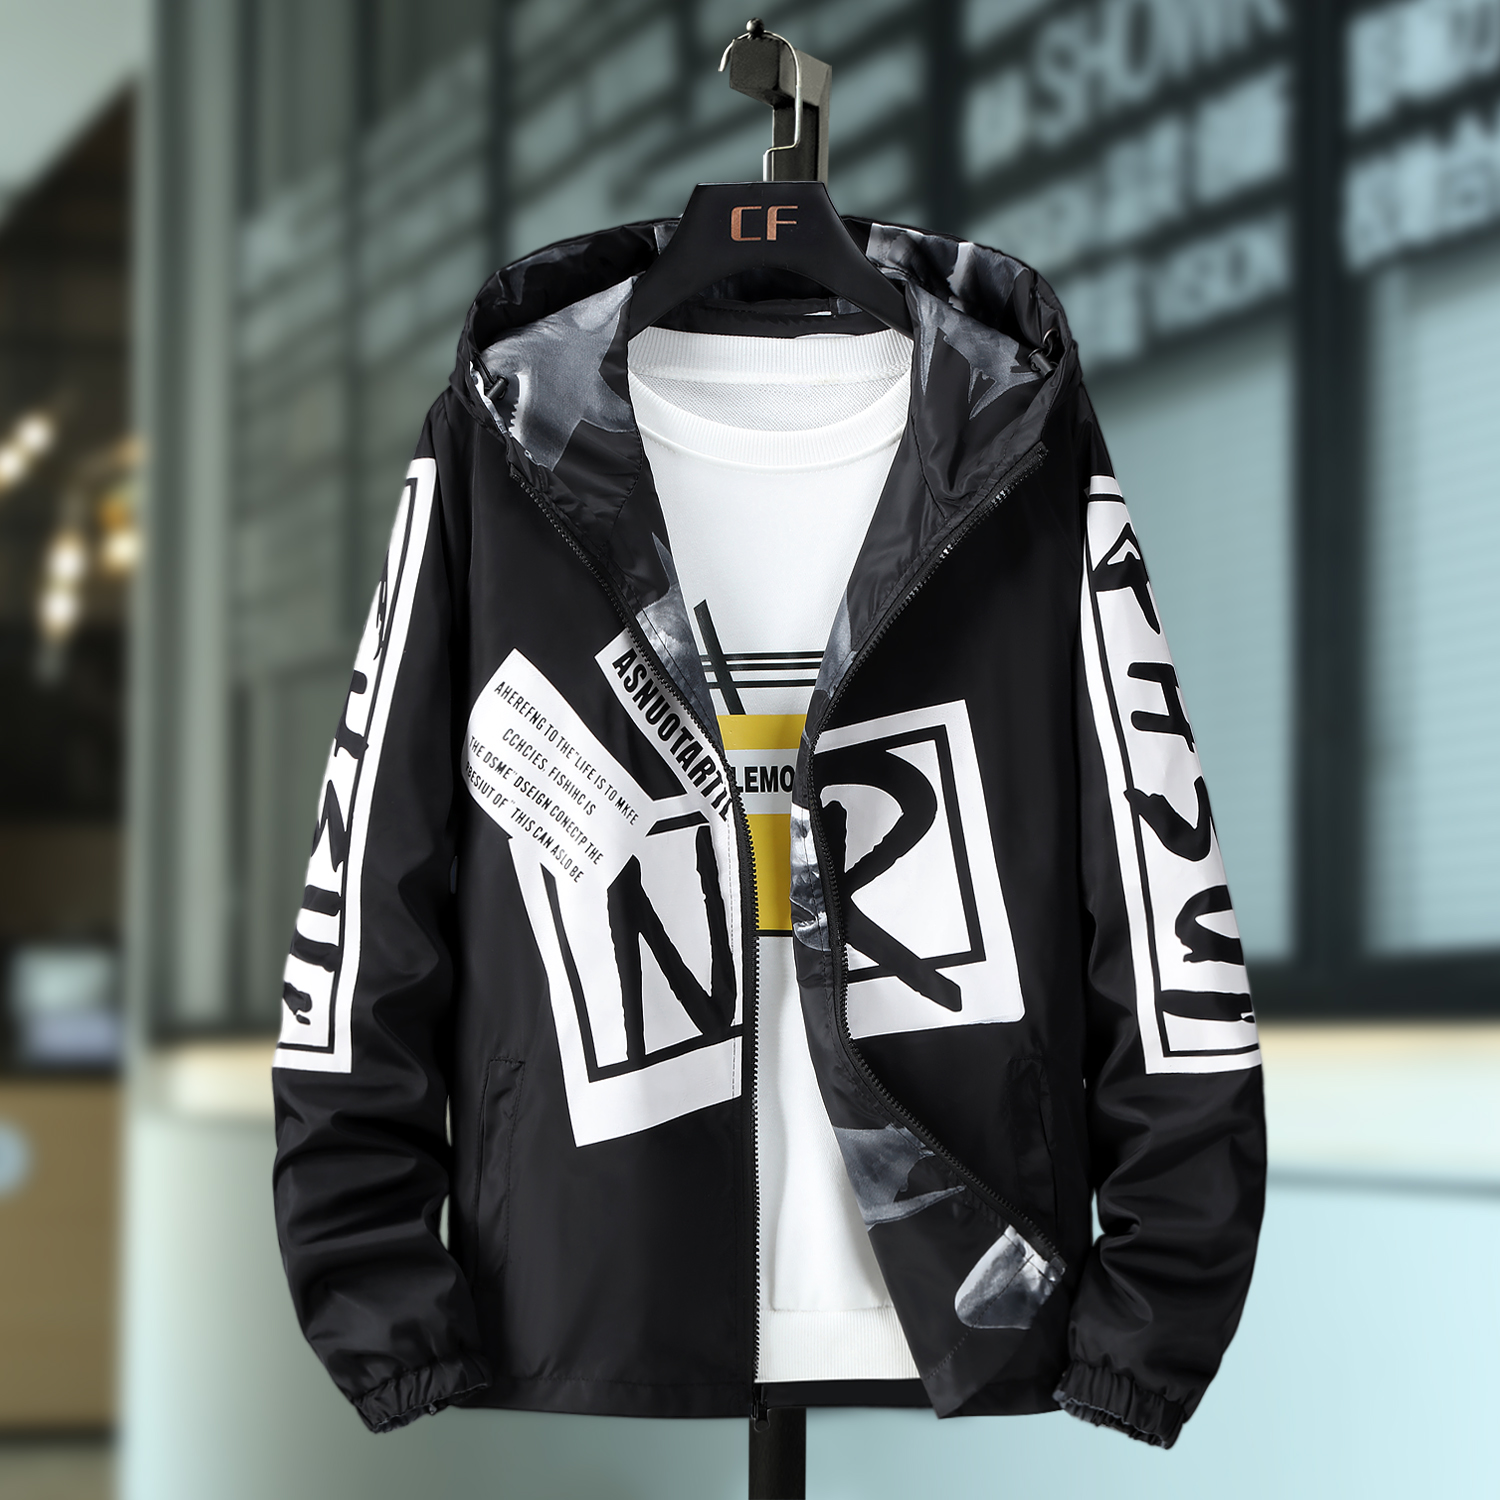 New double-sided jacket for 14-year-old children 15-year-old 16-year-old high school students spring and autumn clothes air permeability personality 18 mens coat